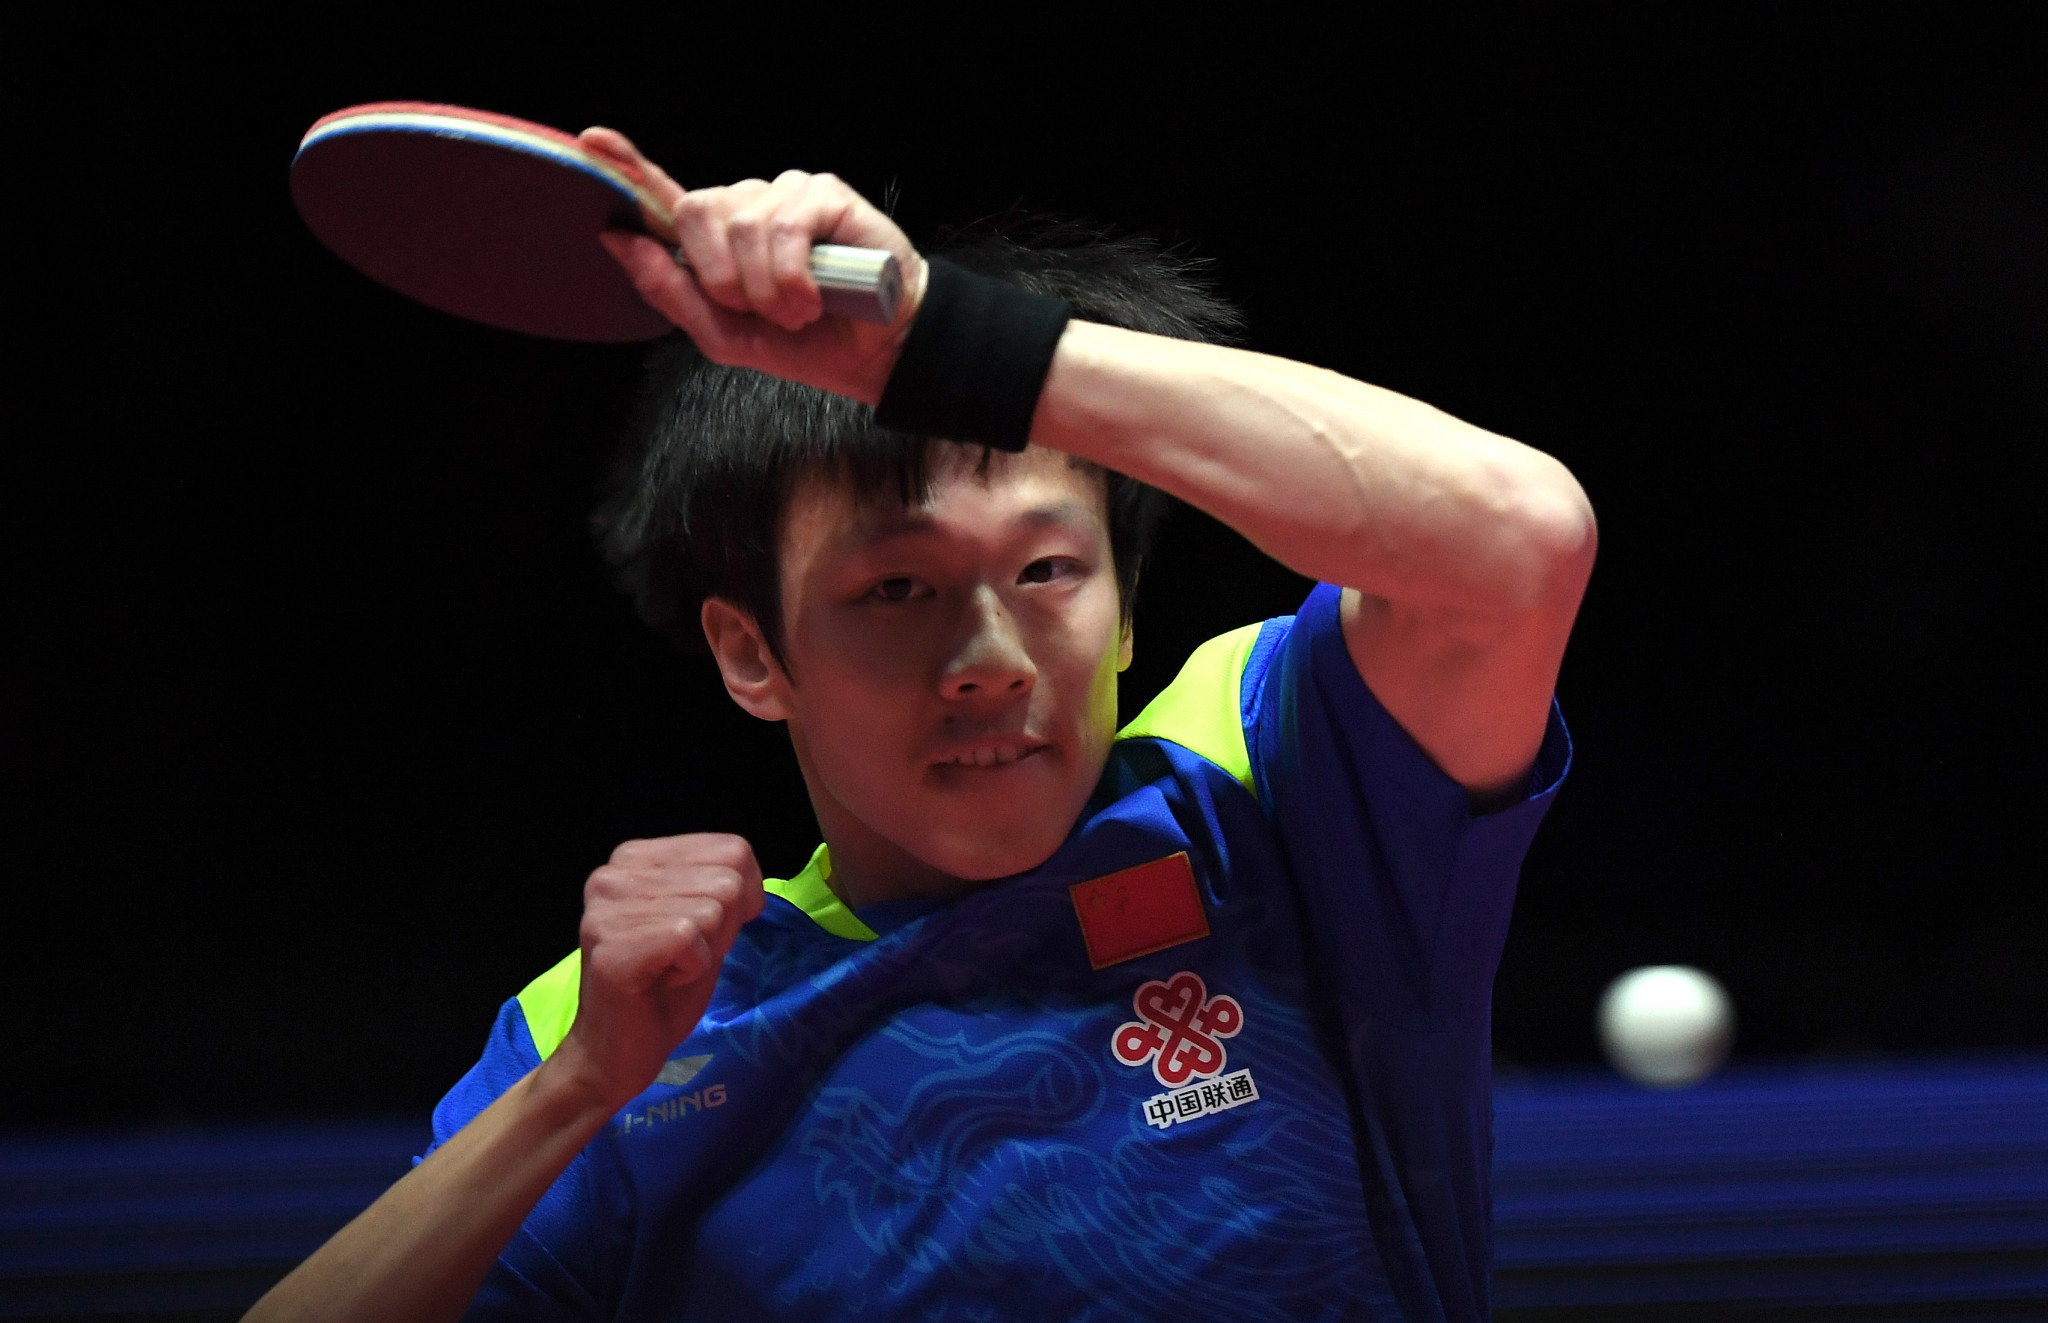 The 12 events all offer ranking points, which will be used to determine the top 16 men's and women's players who will qualify for the ITTF World Tour Grand Finals in December 2020 ©Getty Images